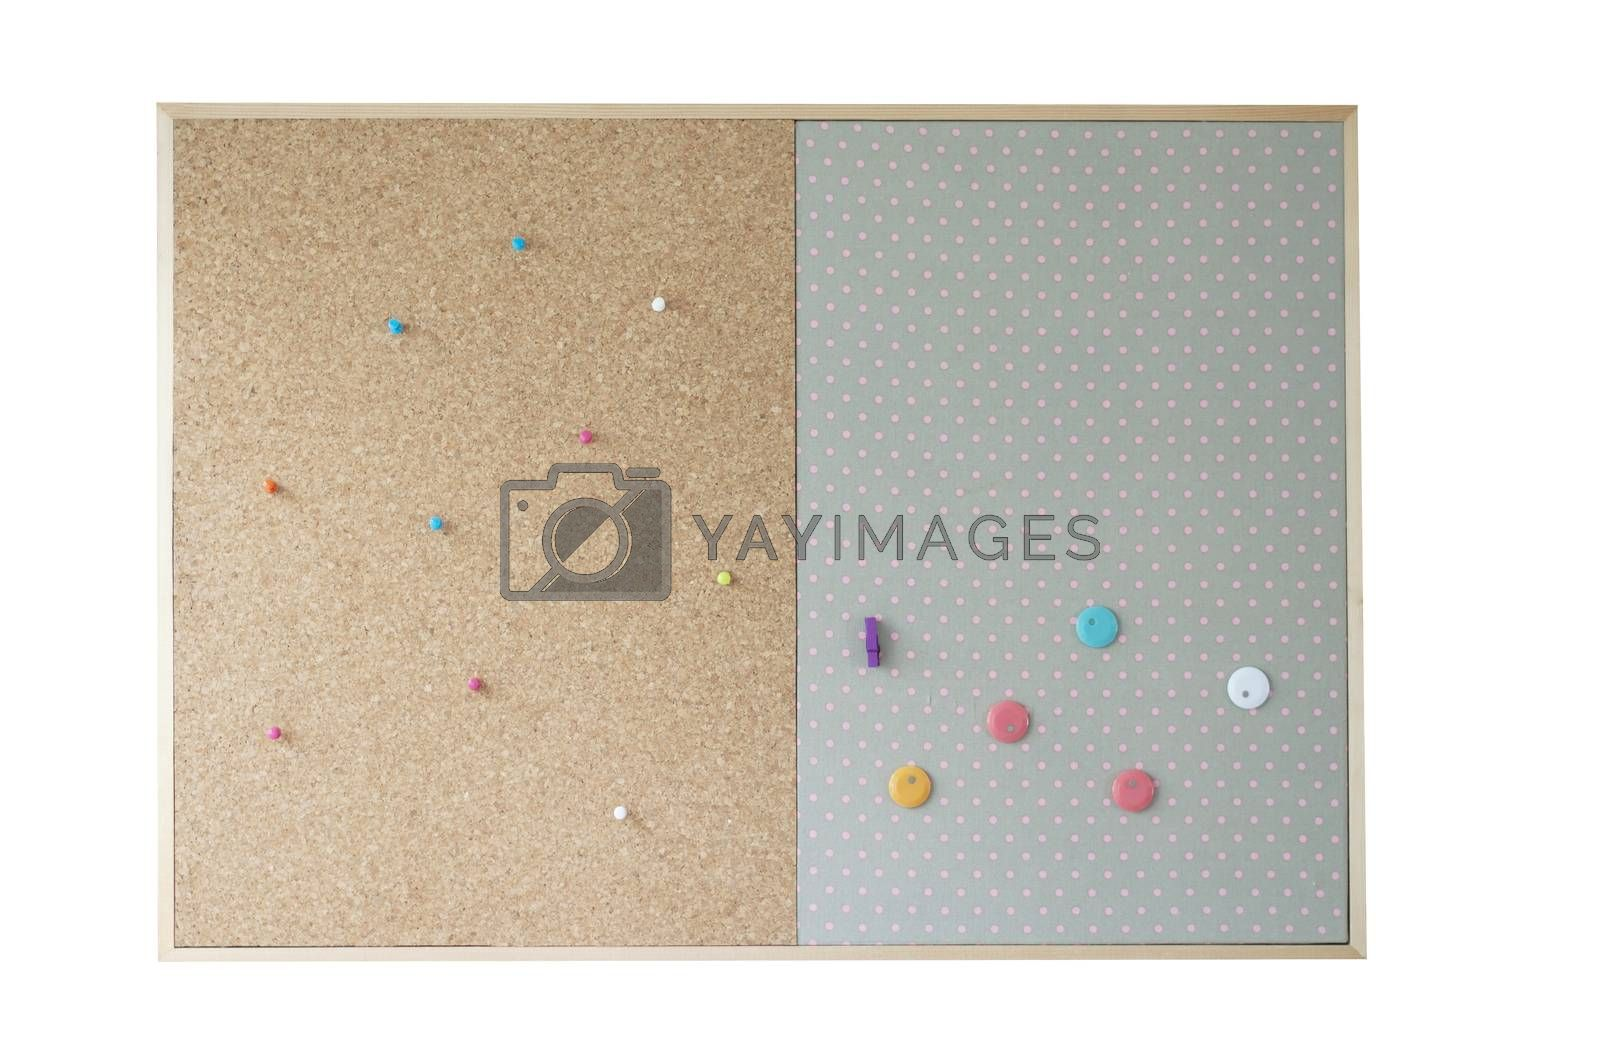 blank cork board with colorful pin on isolate background by Kingsman911